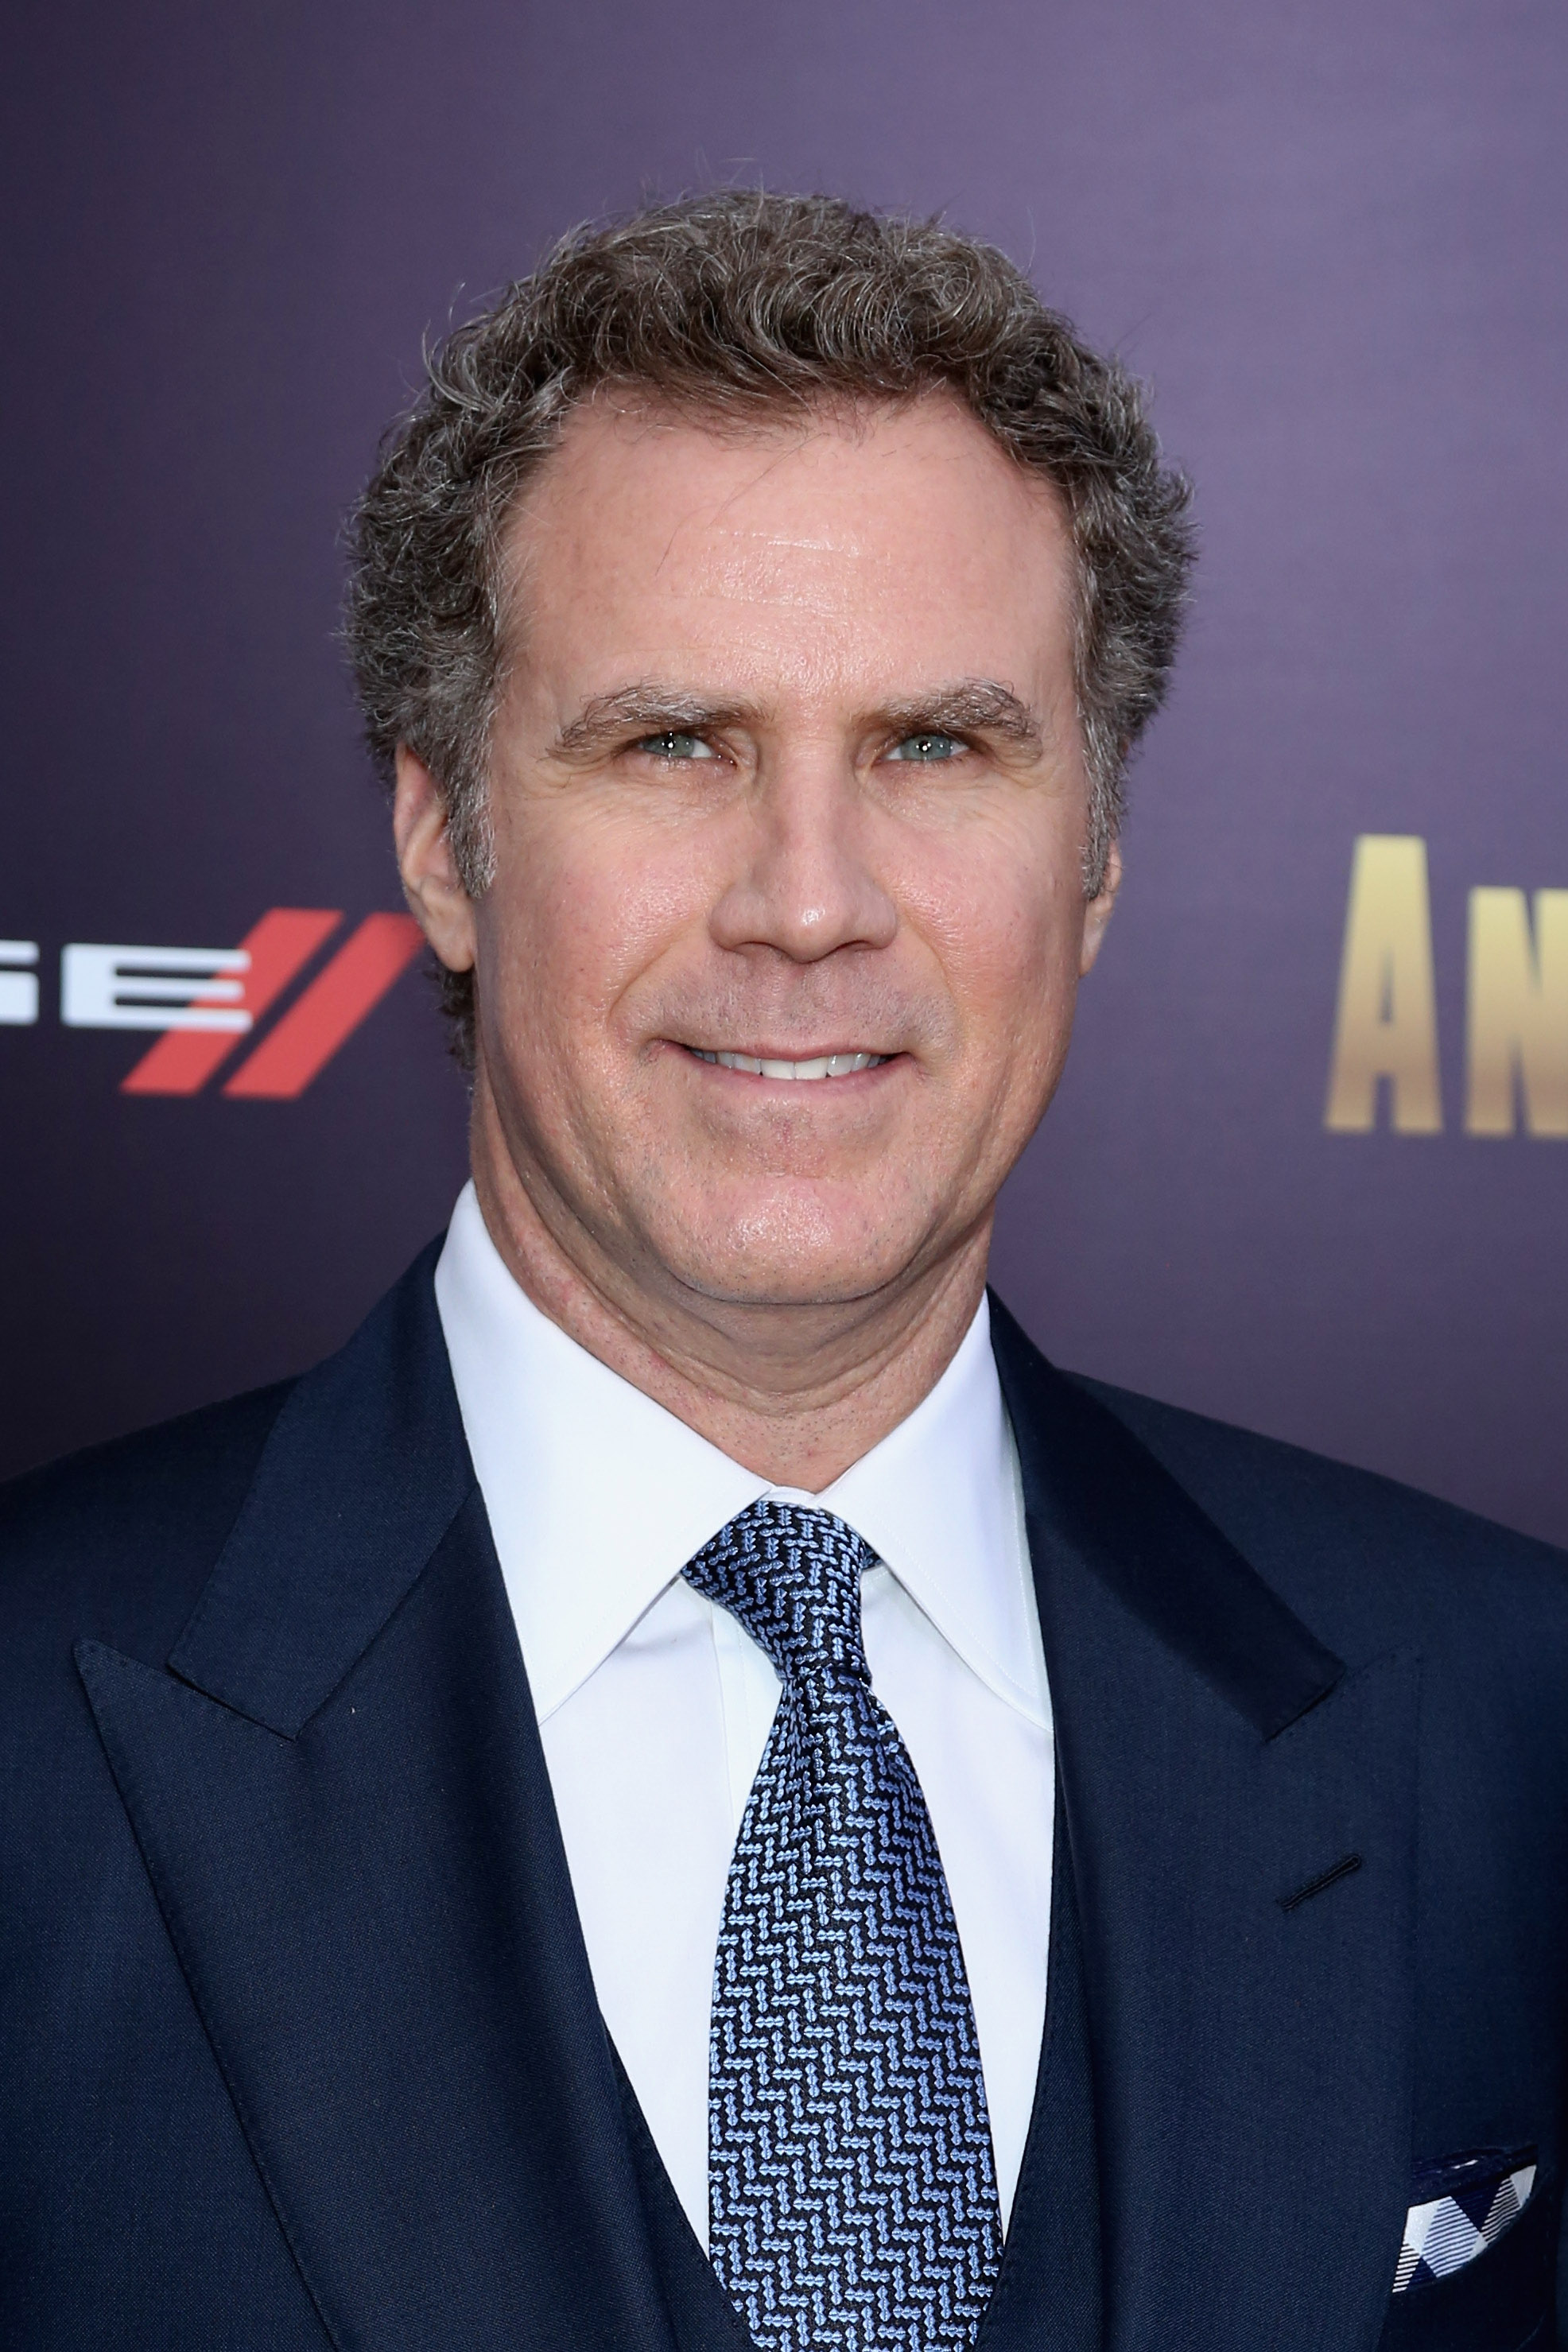 Will Ferrell 'unhurt' and out of hospital after his car flipped over in two-car crash